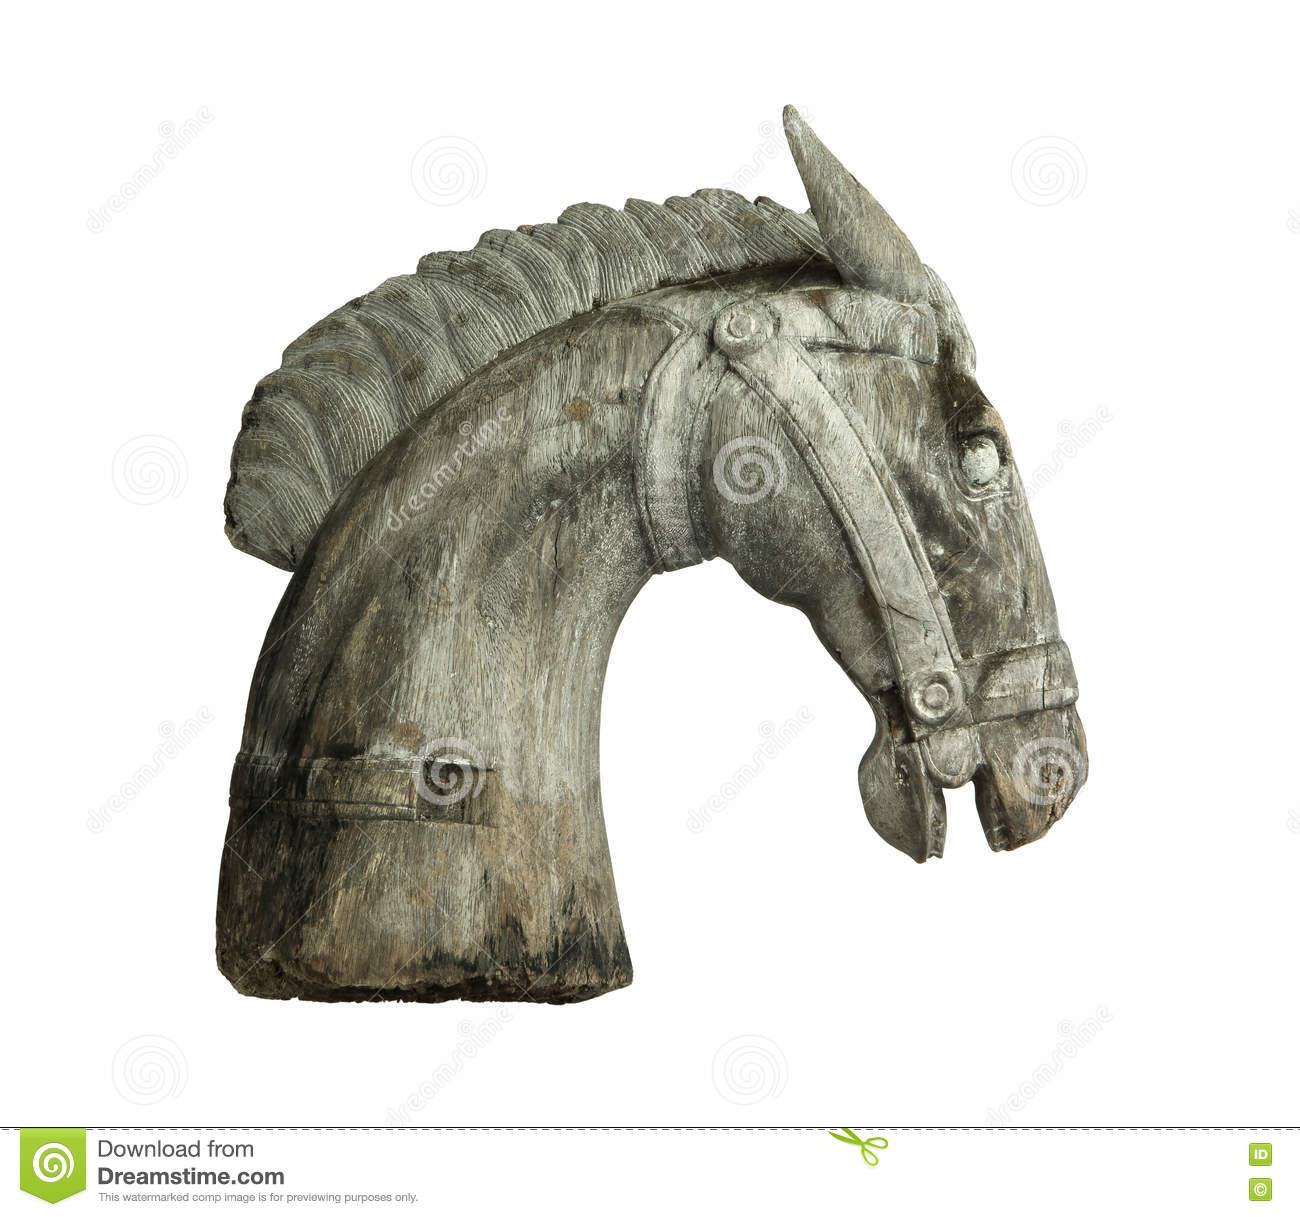 Tête De Cheval En Bois Photo Stock Image Du Sculpture 74895154